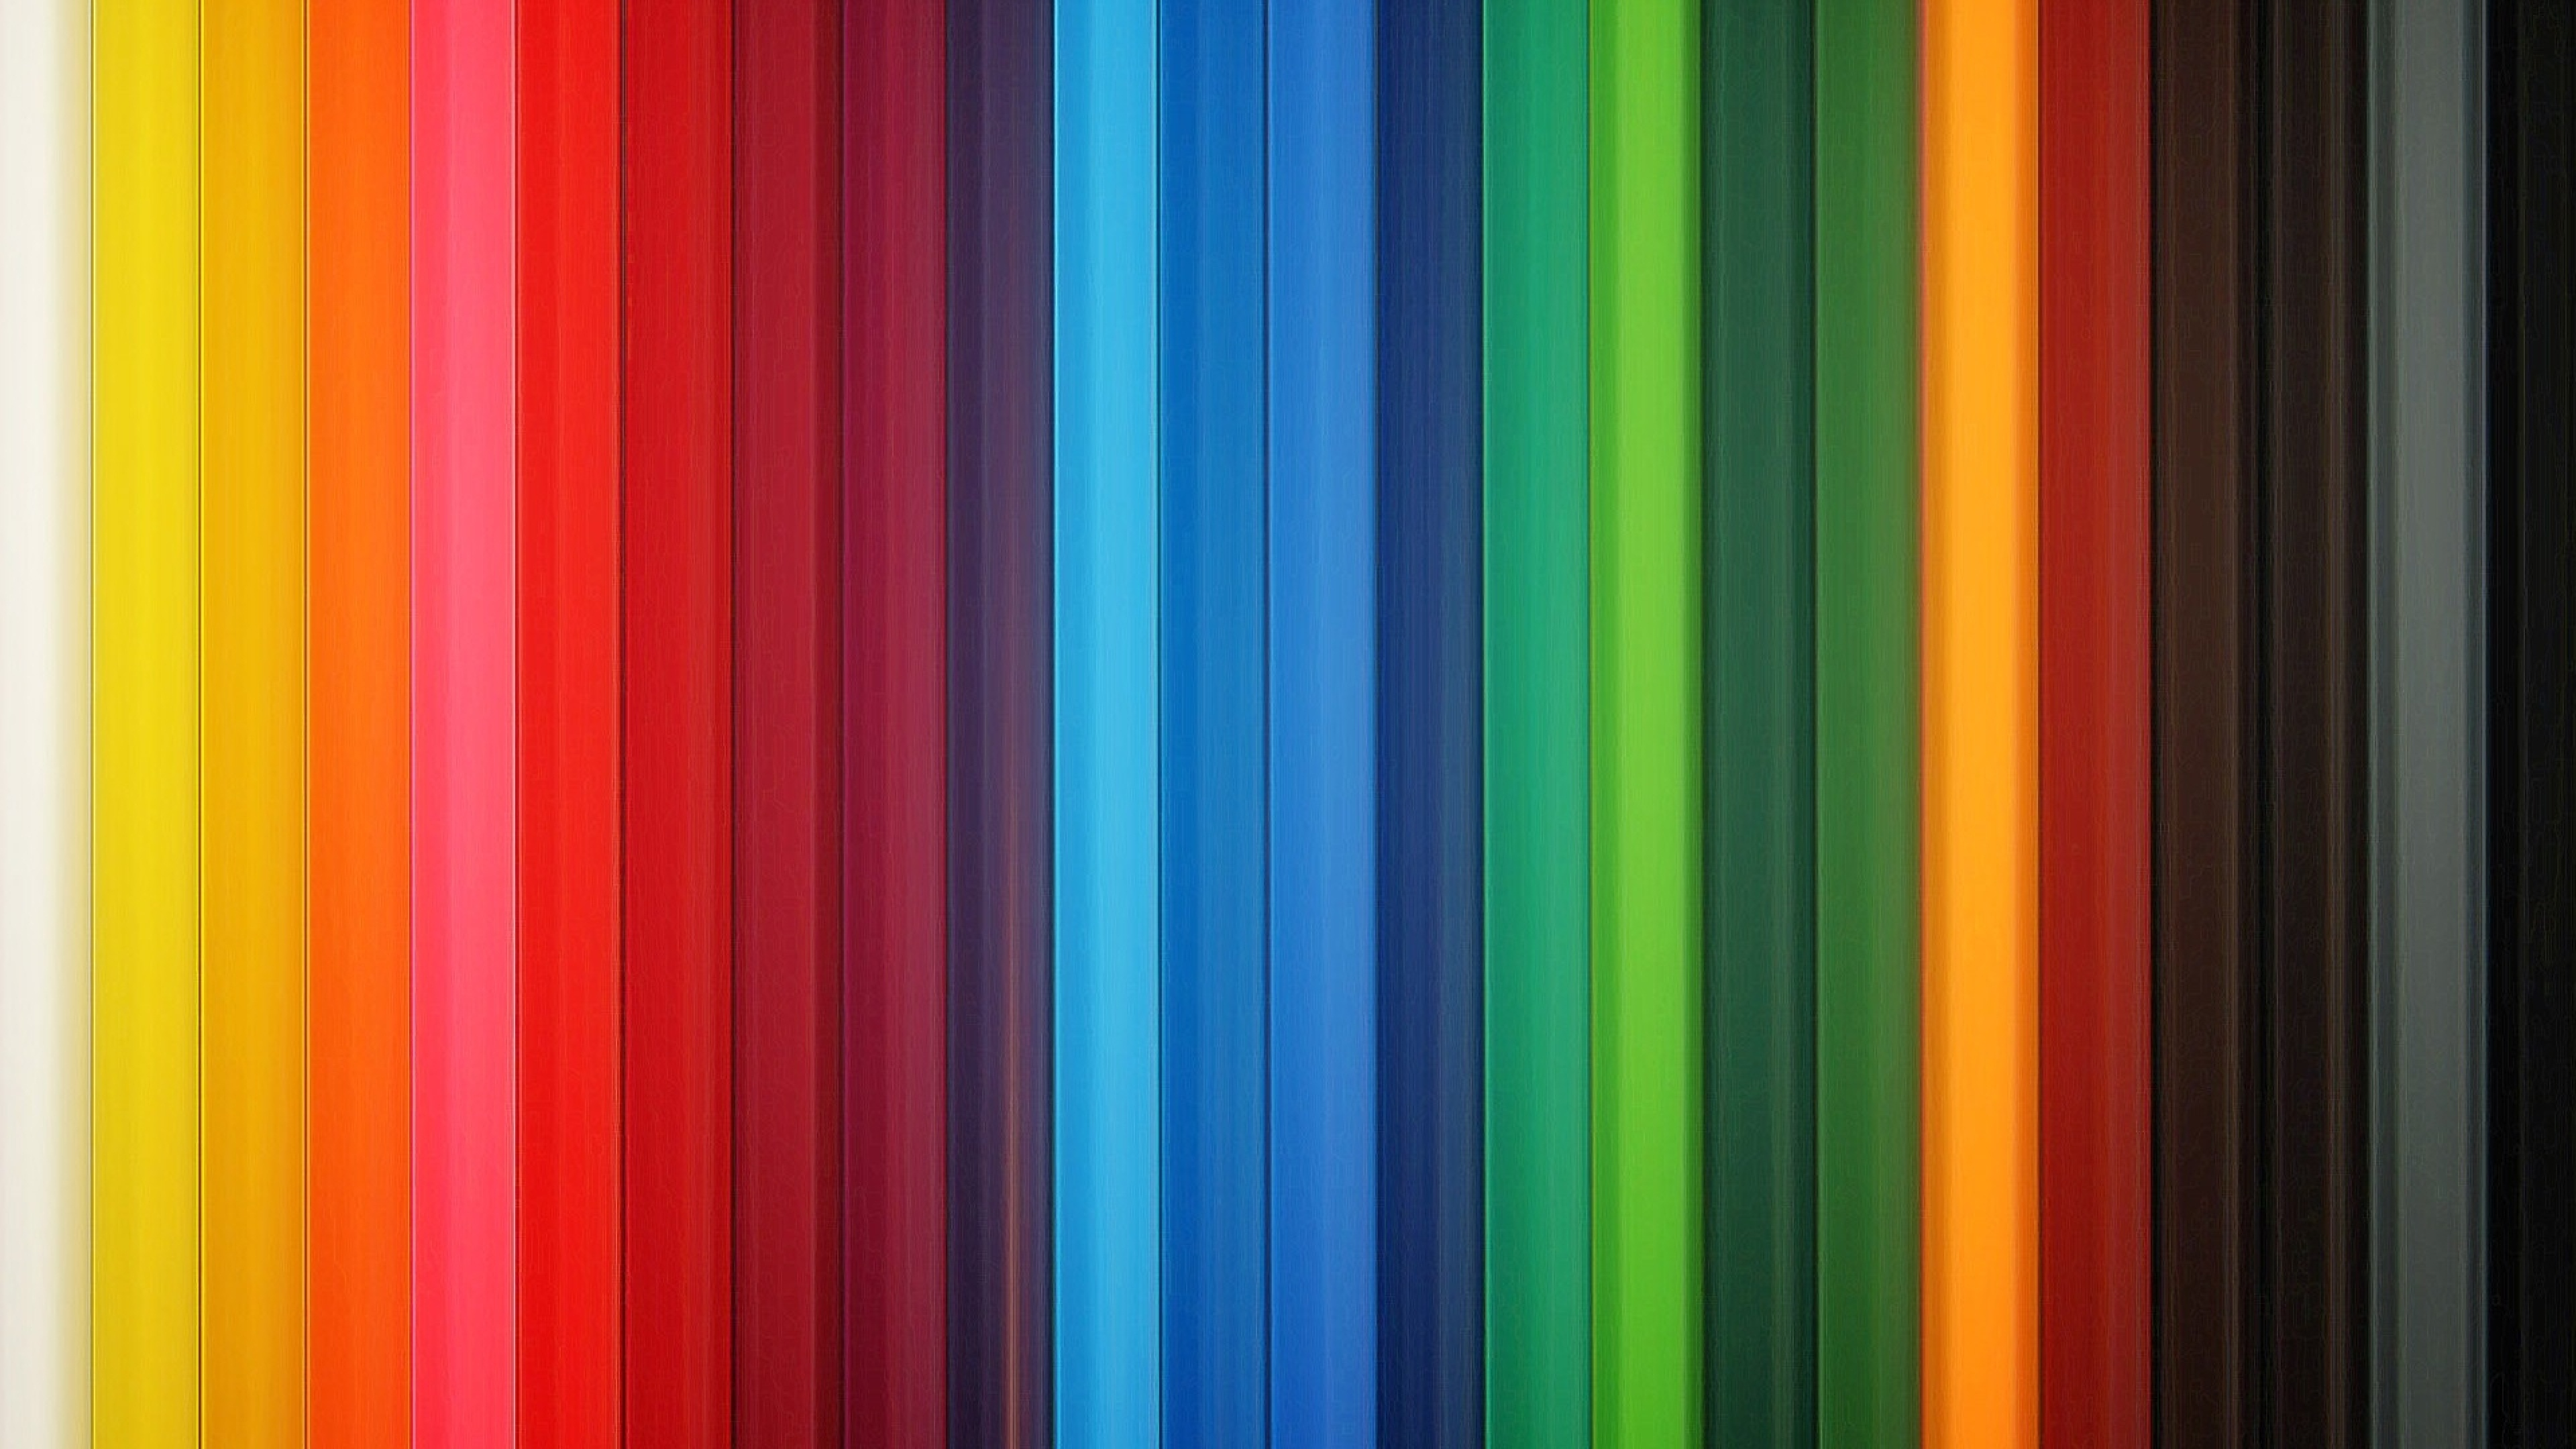 Download Wallpaper 3840x2160 Colorful Stripes Rainbow 3840x2160